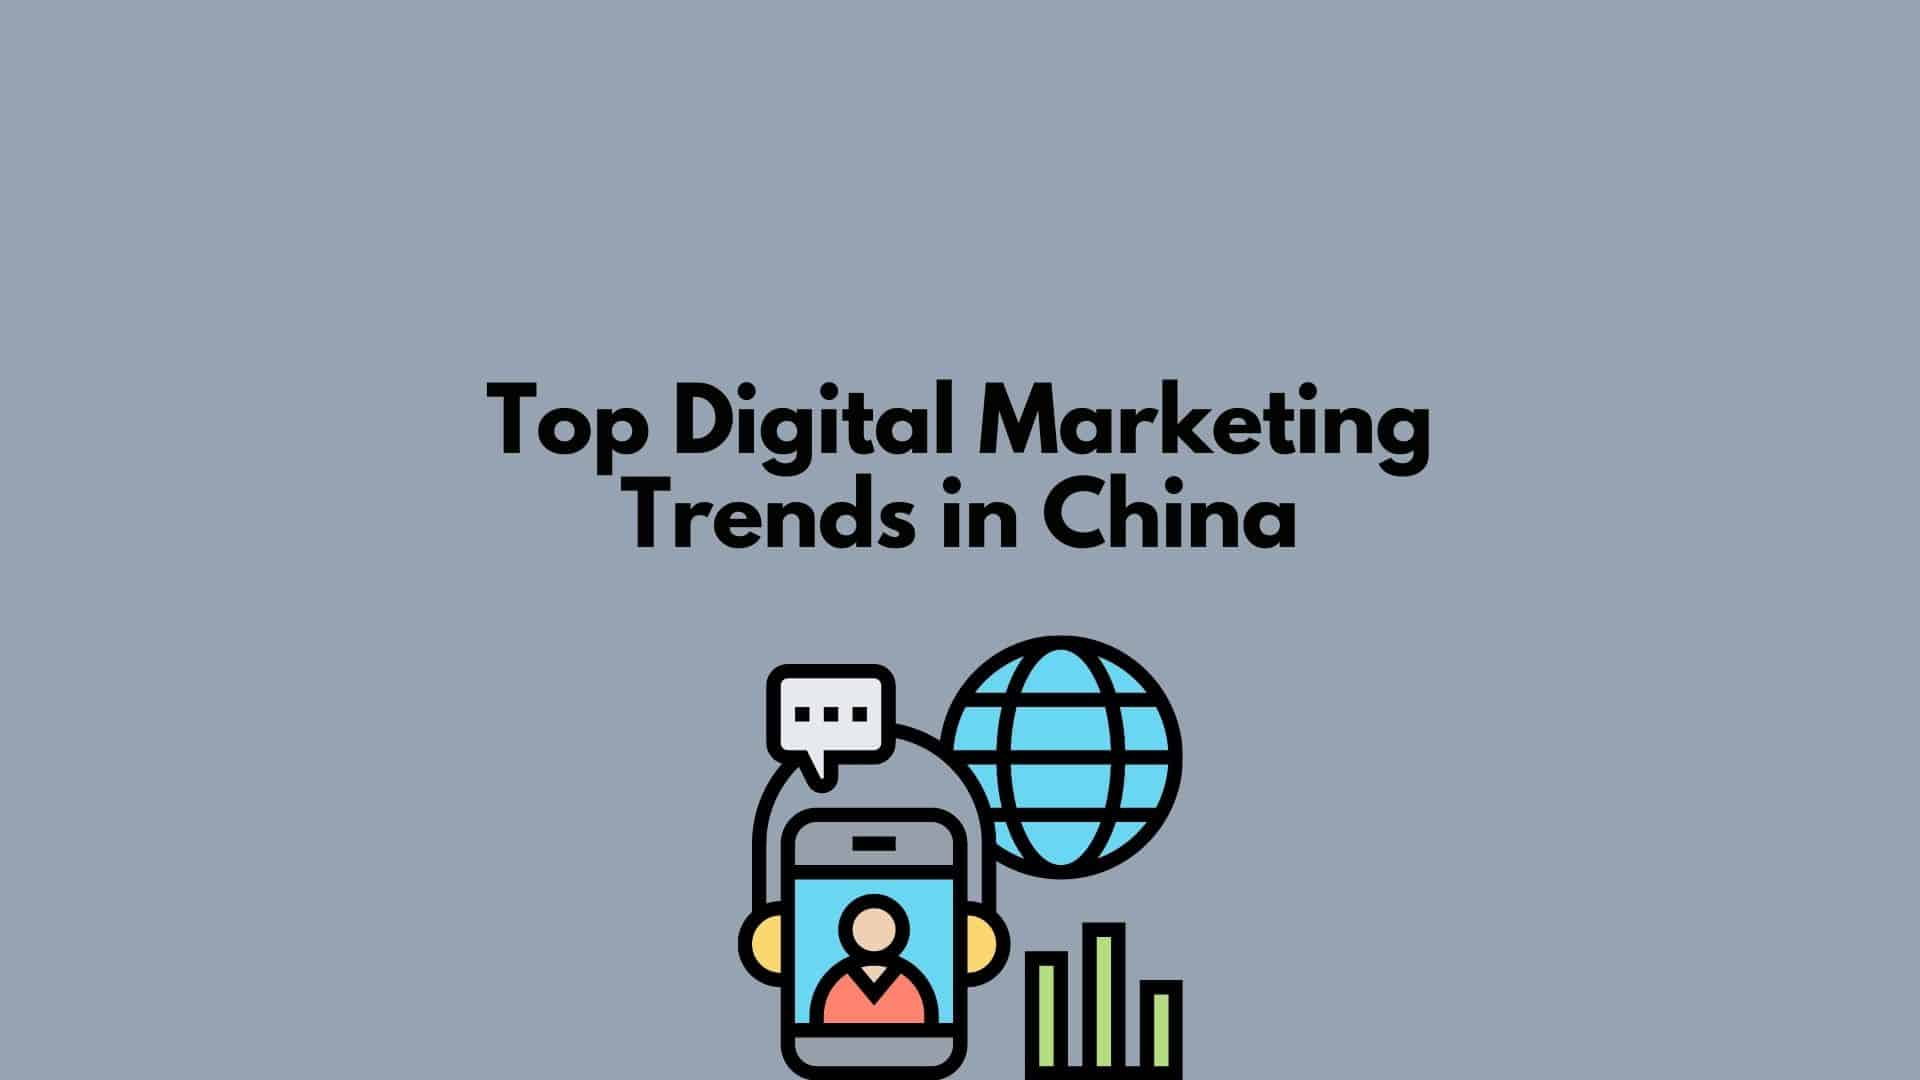 Top China Digital Marketing Trends in 2020